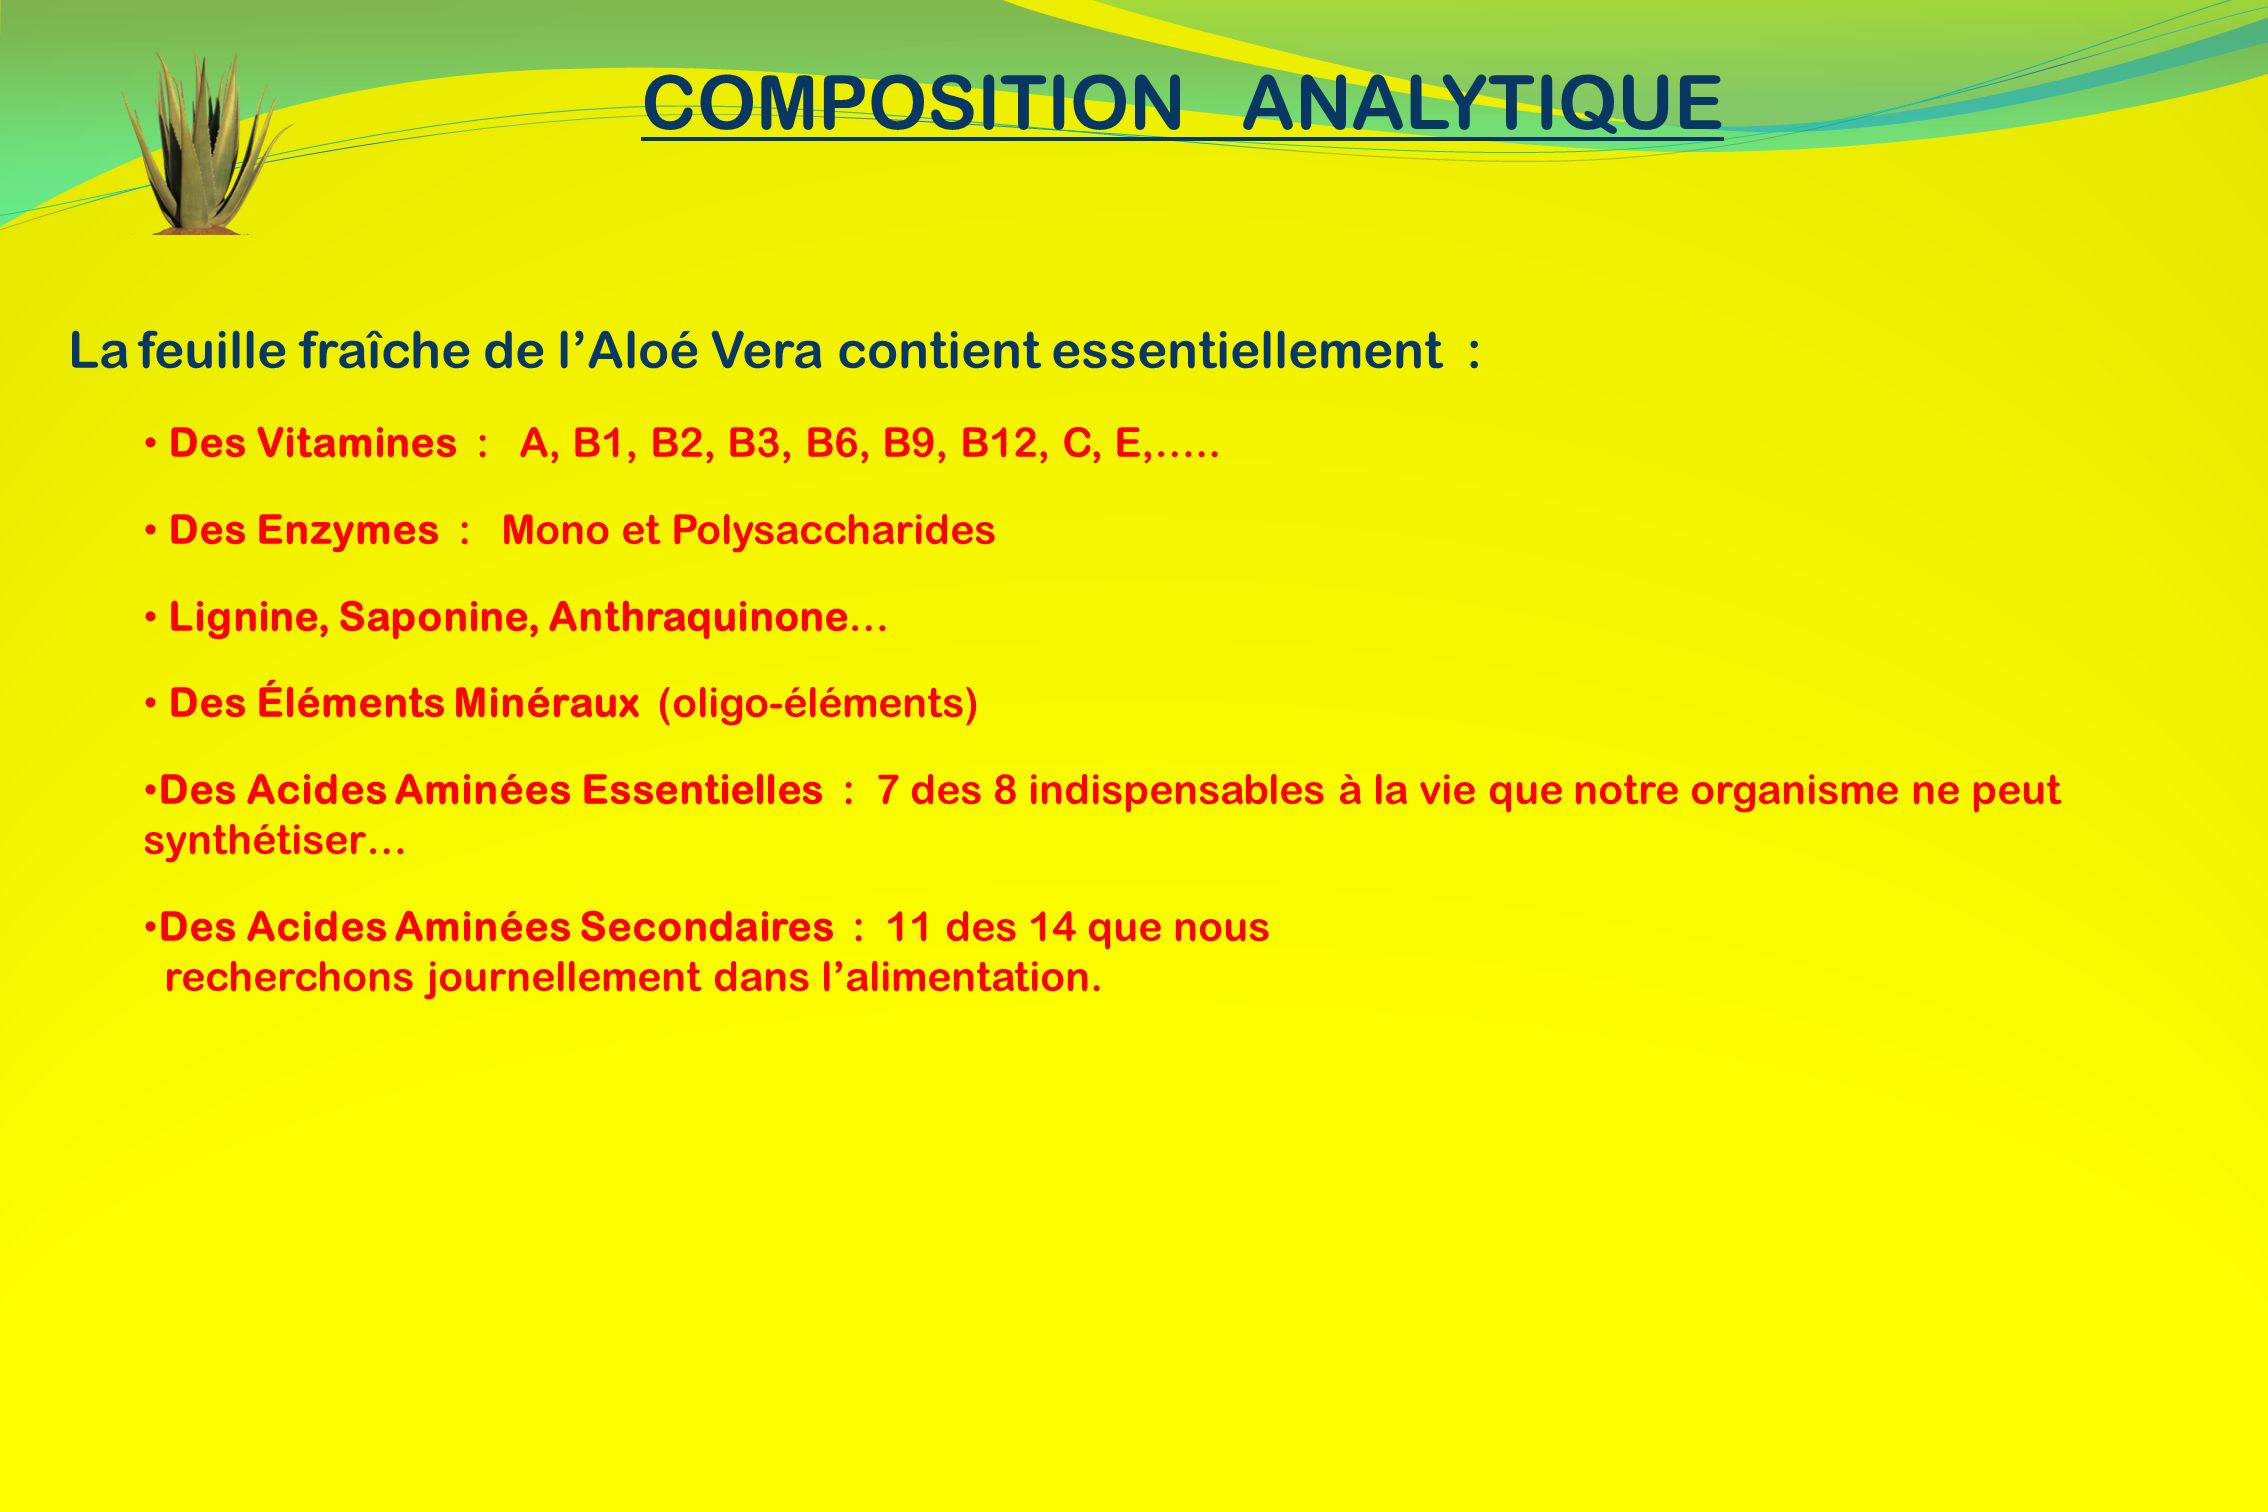 COMPOSITION ANALYTIQUE